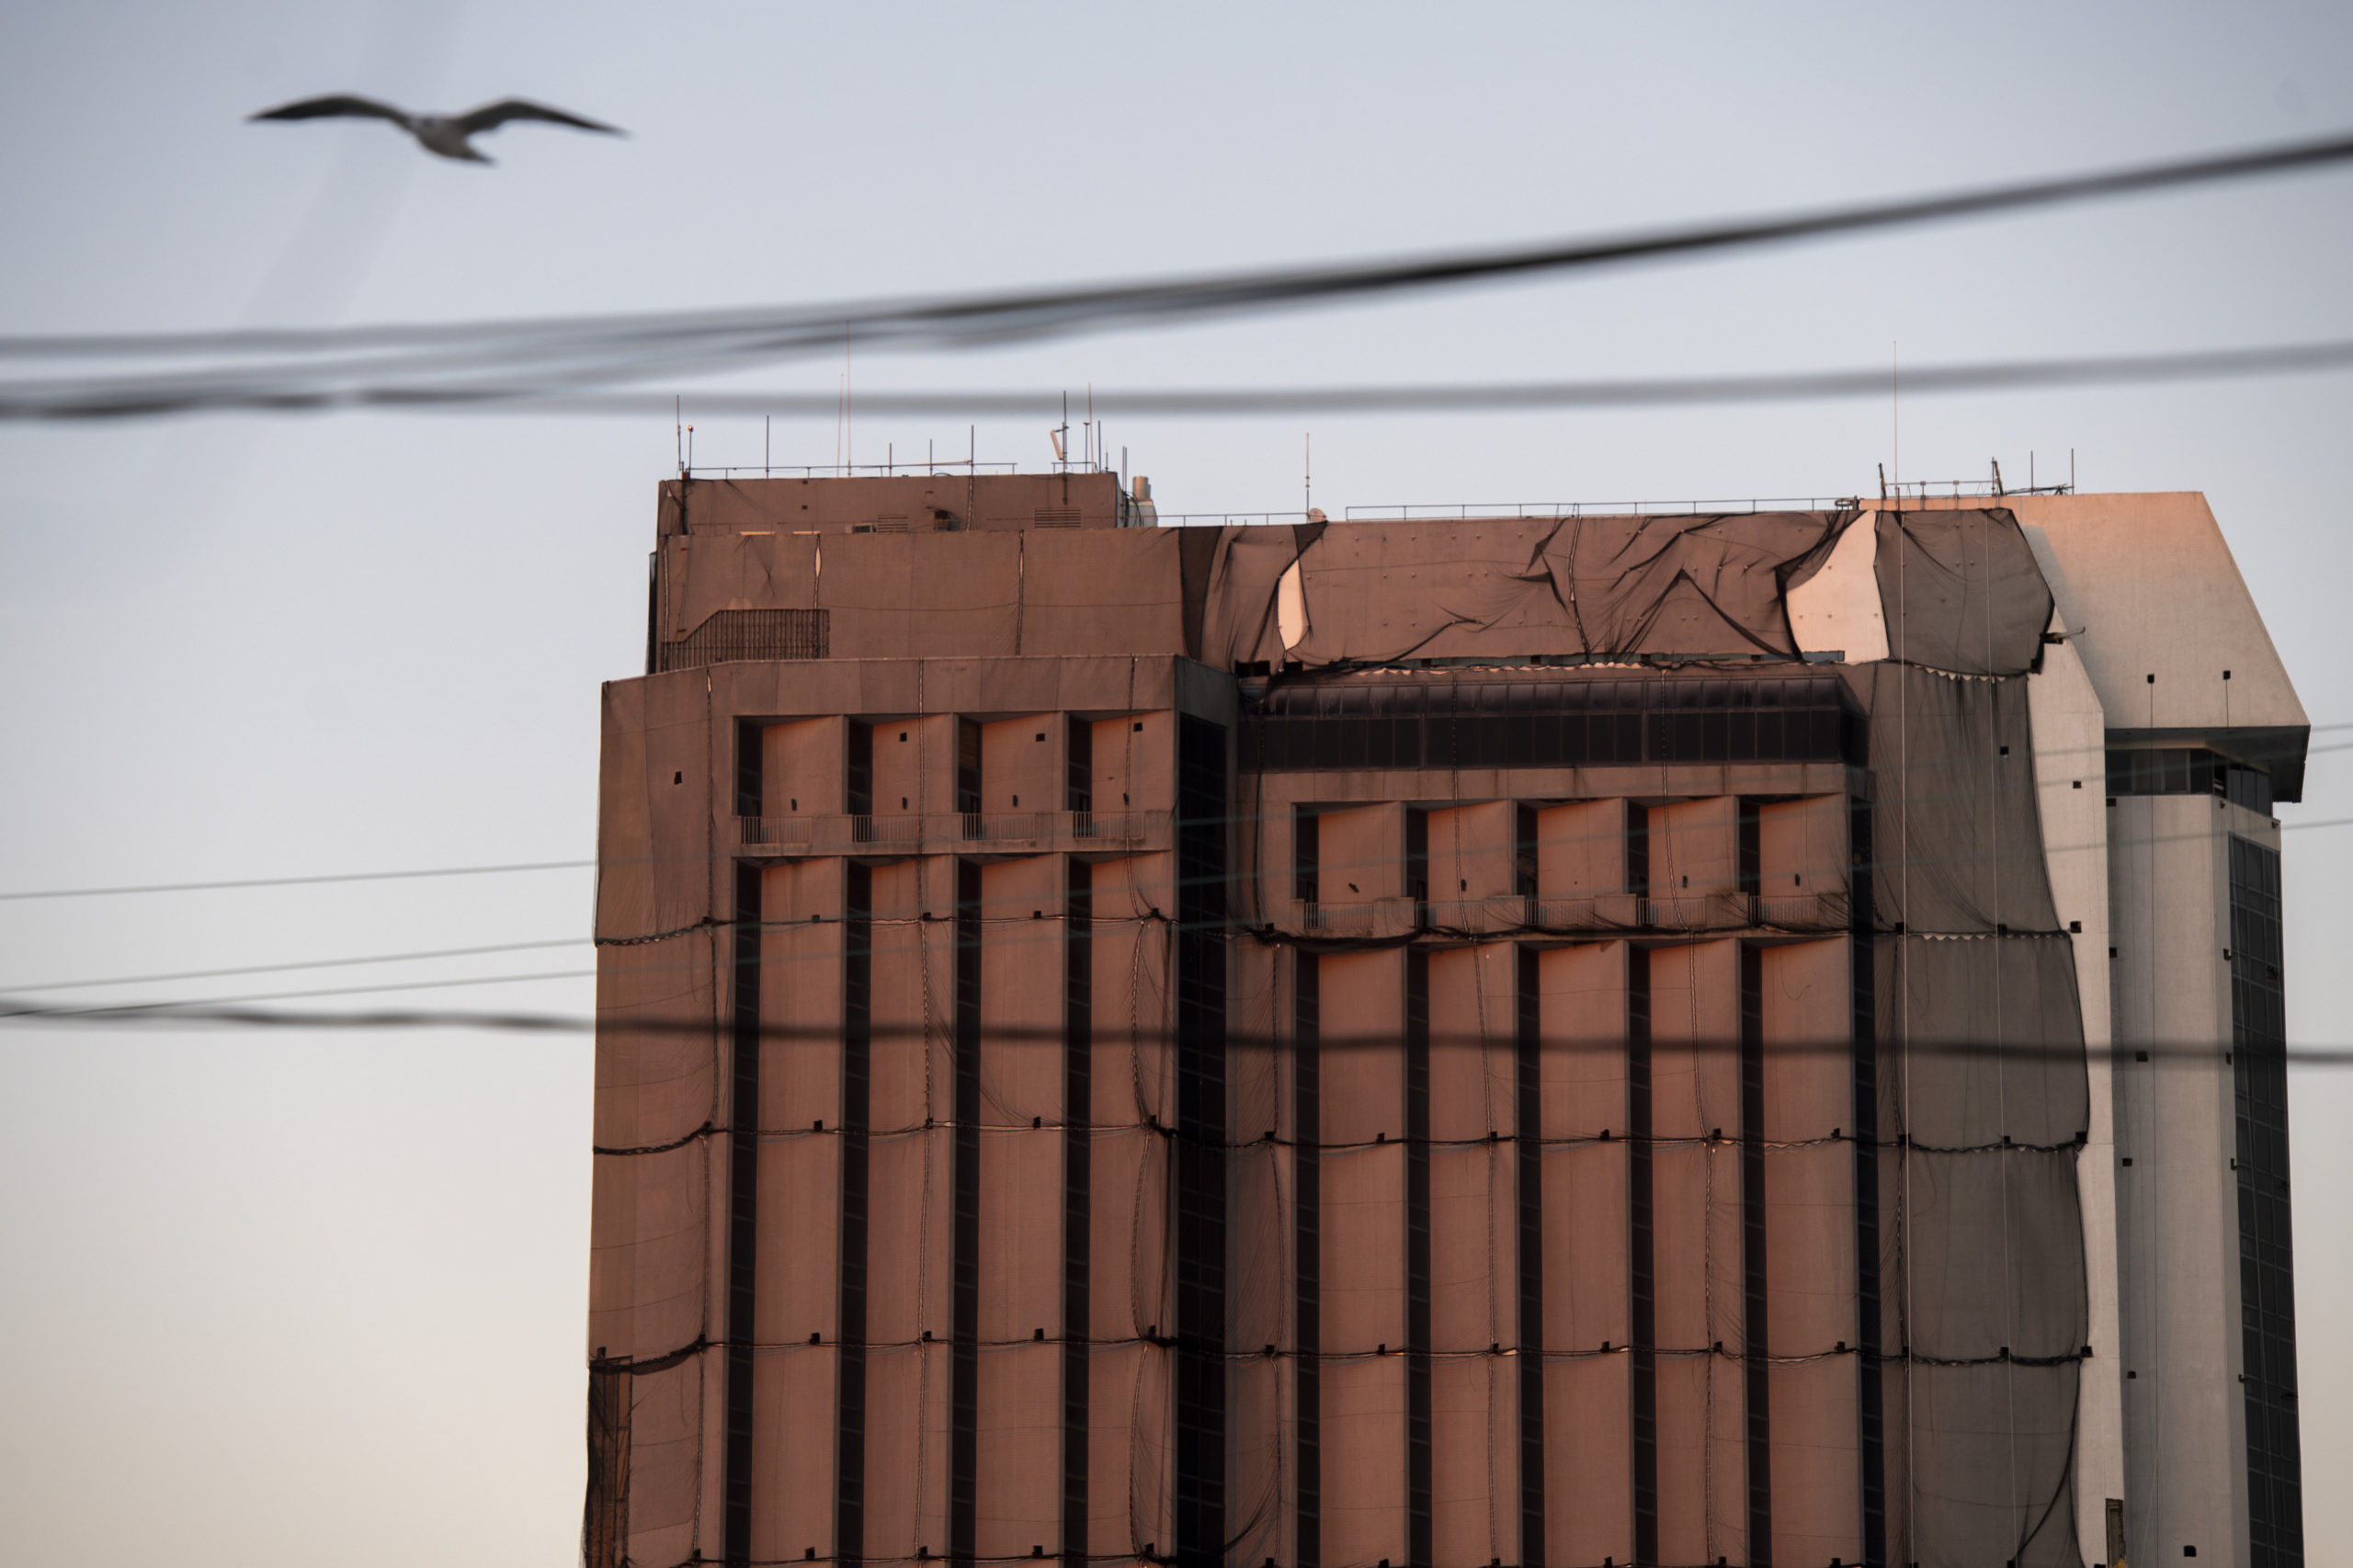 A seagull flies past protective netting draped on a tower illuminated at dusk at Trump Plaza Hotel and Casino, once one of the city's premier destinations, on Sept. 30. (Mark Makela/Getty Images)